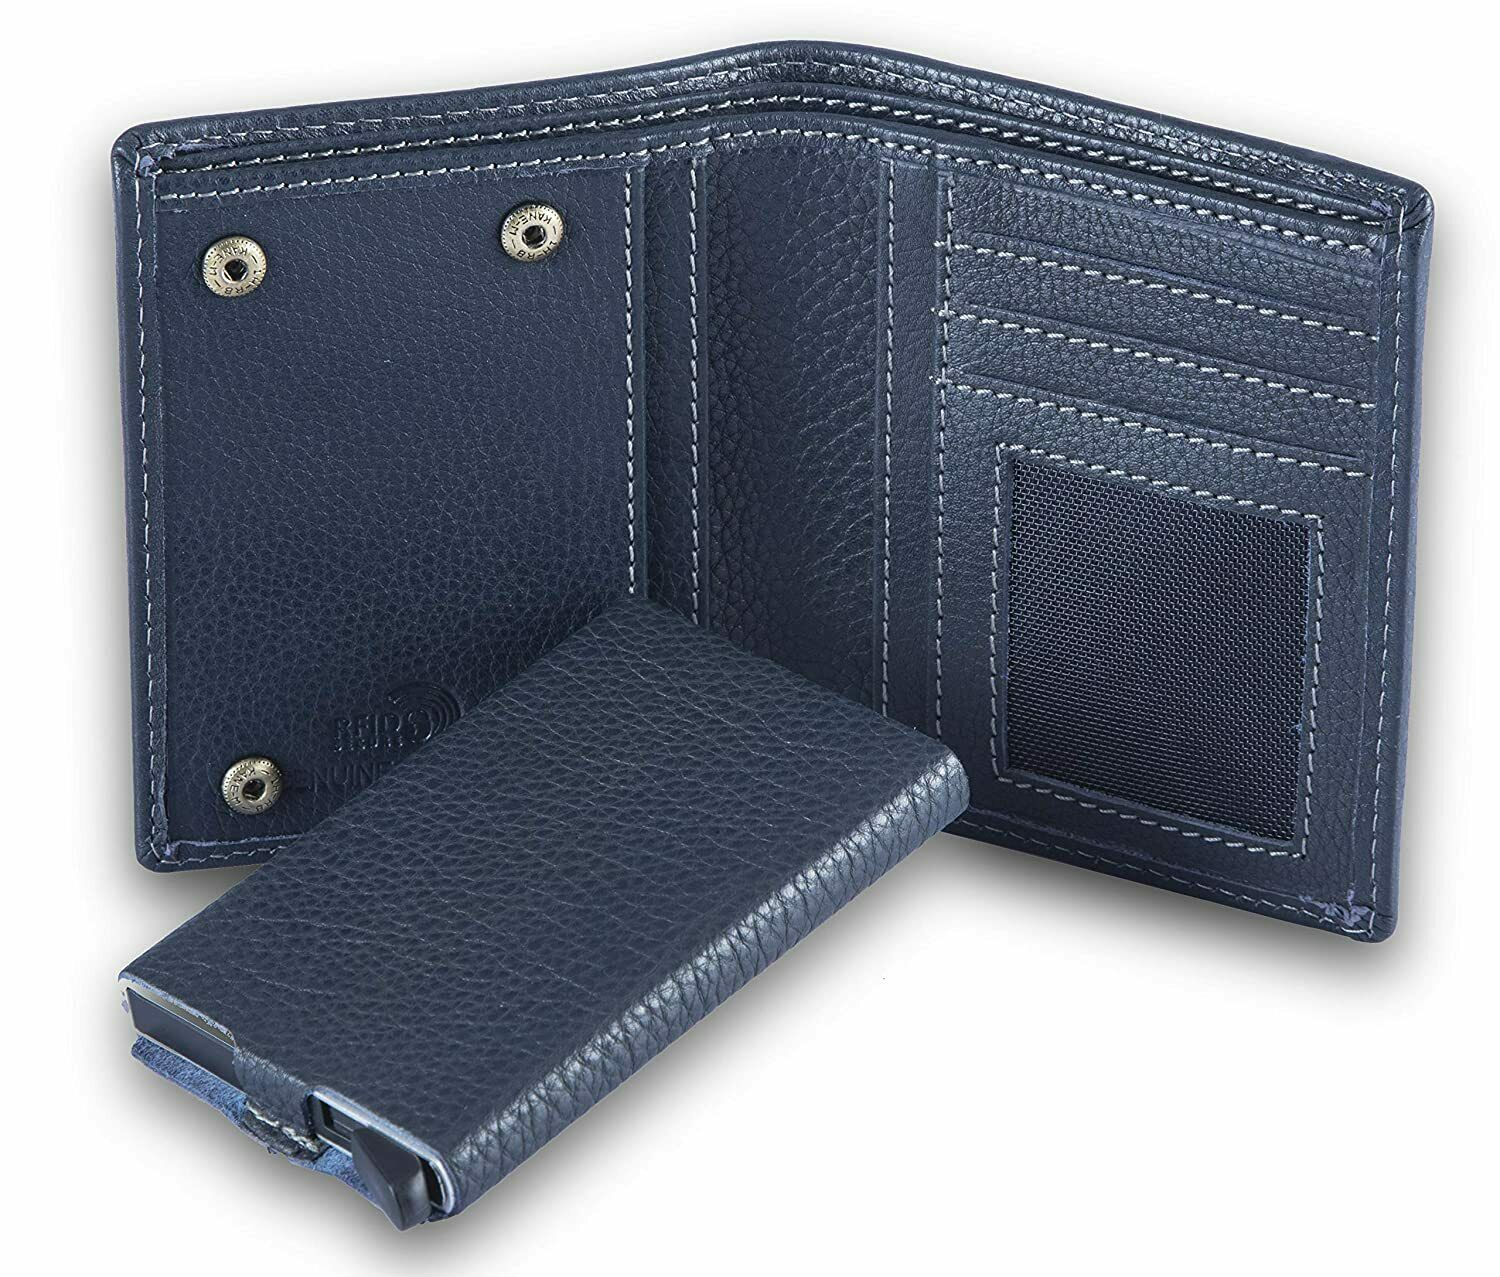 New Leather RFID Wallet with Detachable Card Case for Men Navy Blue